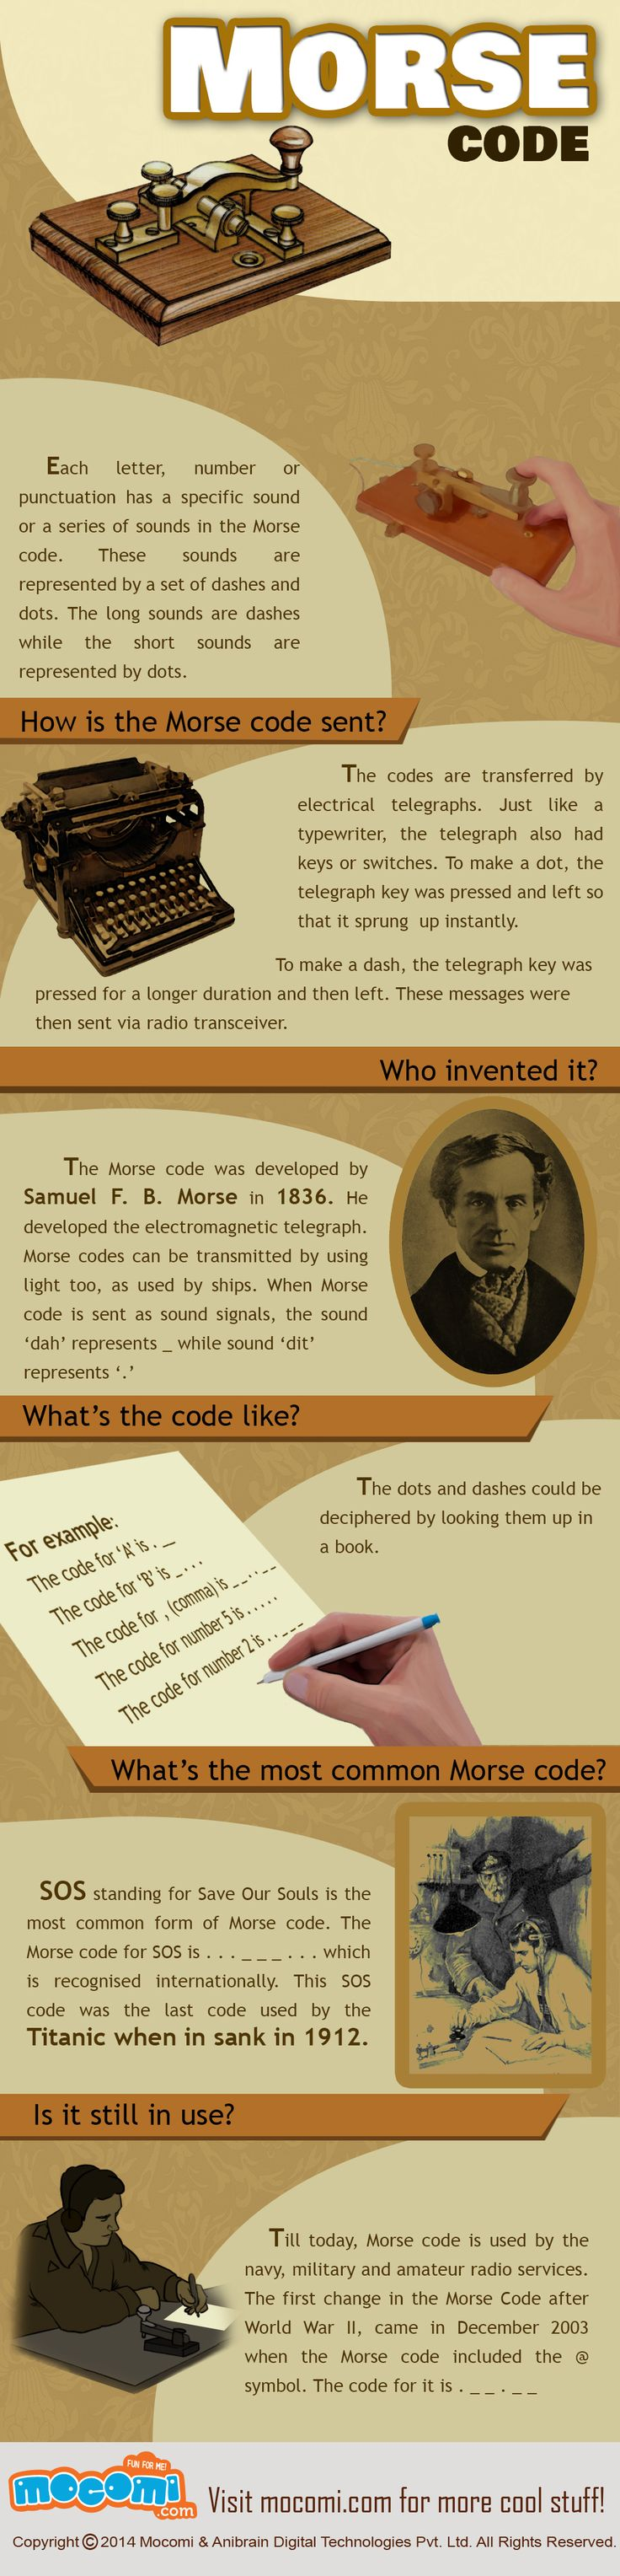 Morse Code -  It was developed by Samuel F. B. Morse in 1836. Here the codes are transferred by electrical telegraph.